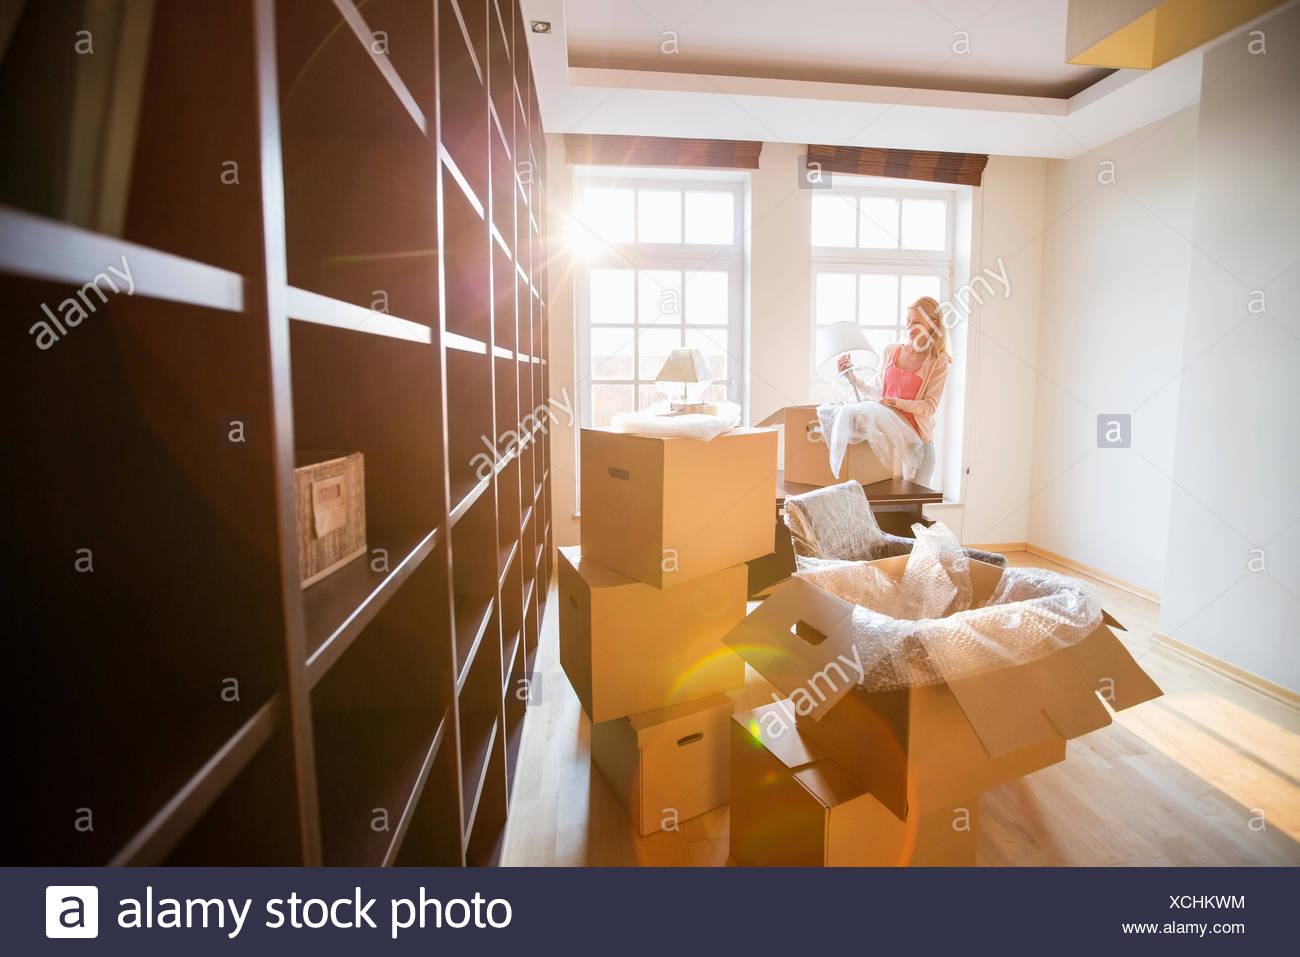 Woman unpacking lamp from moving box at new house - Stock Image